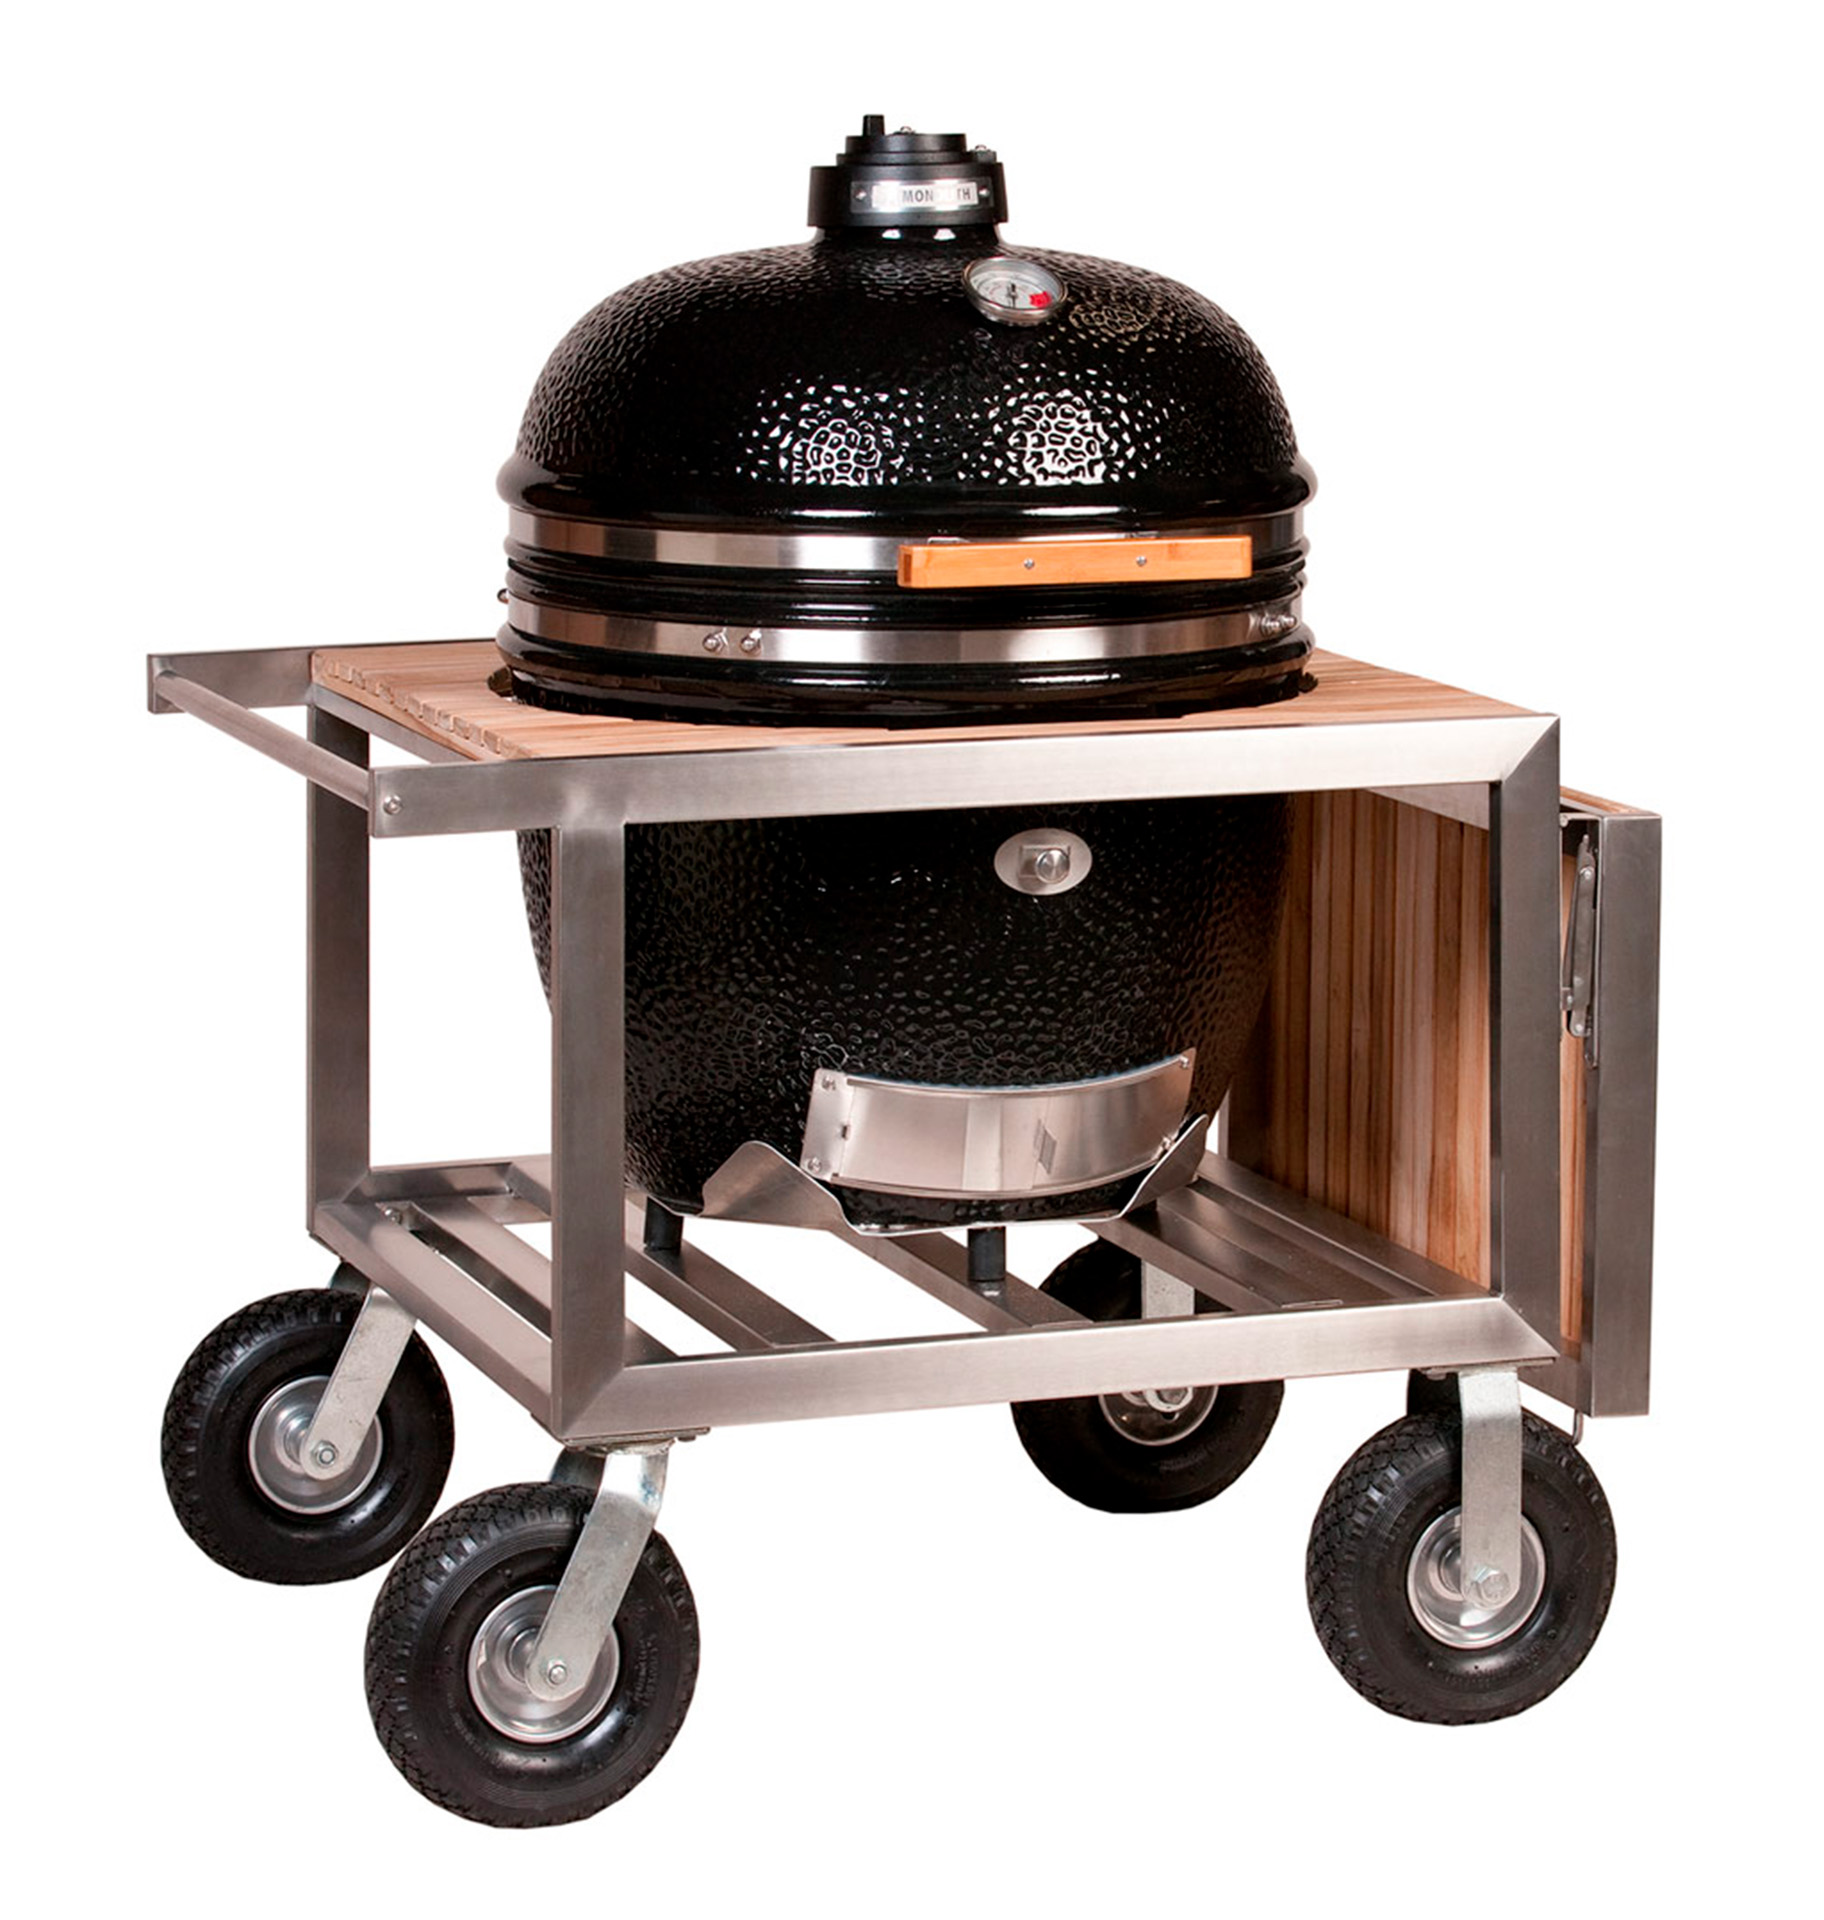 monolith buggy monolith grill monolith buggy monolith grill